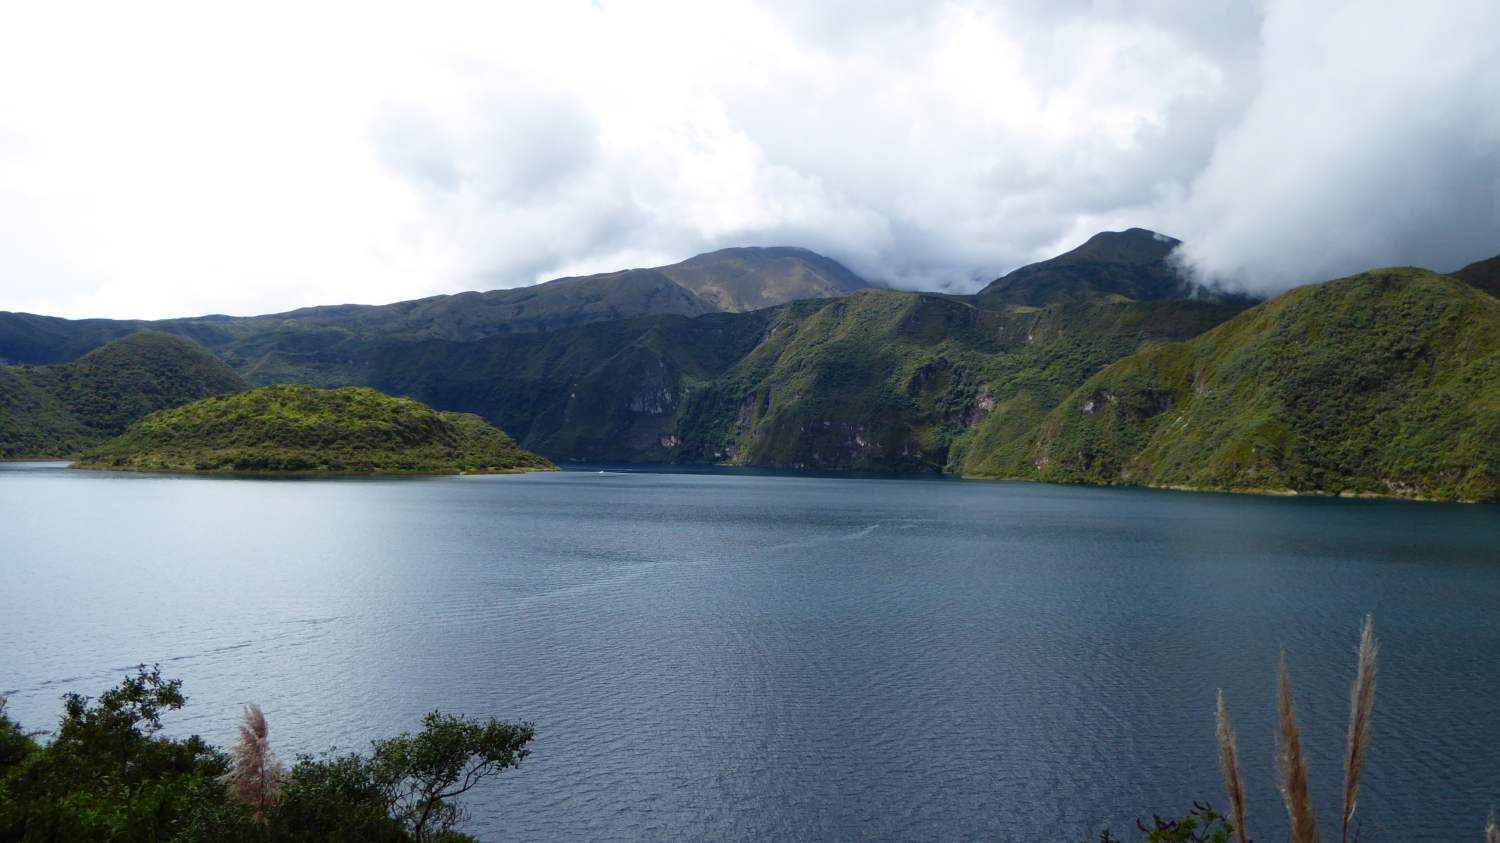 A lake is the remnant of the eruption of a supervolcano